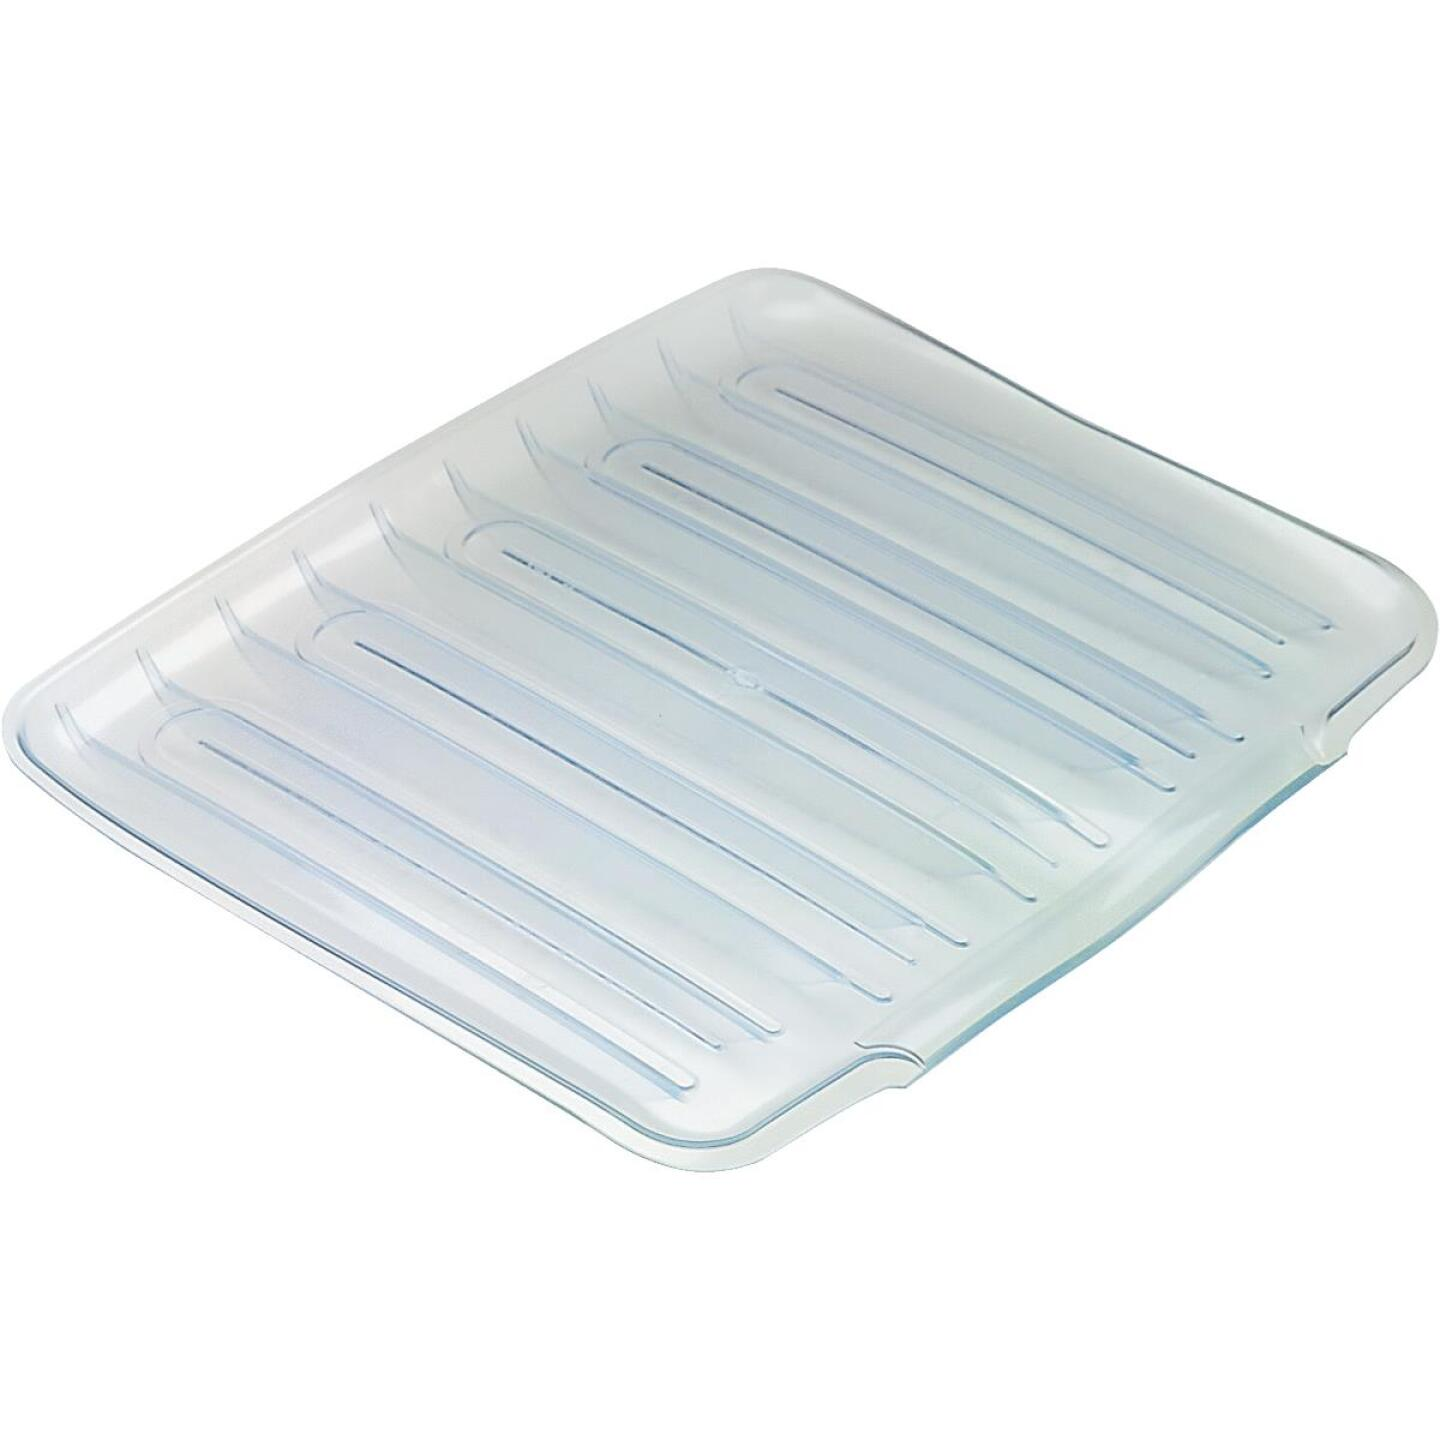 Rubbermaid 14.38 In. x 15.38 In. Clear Sloped Drainer Tray Image 1